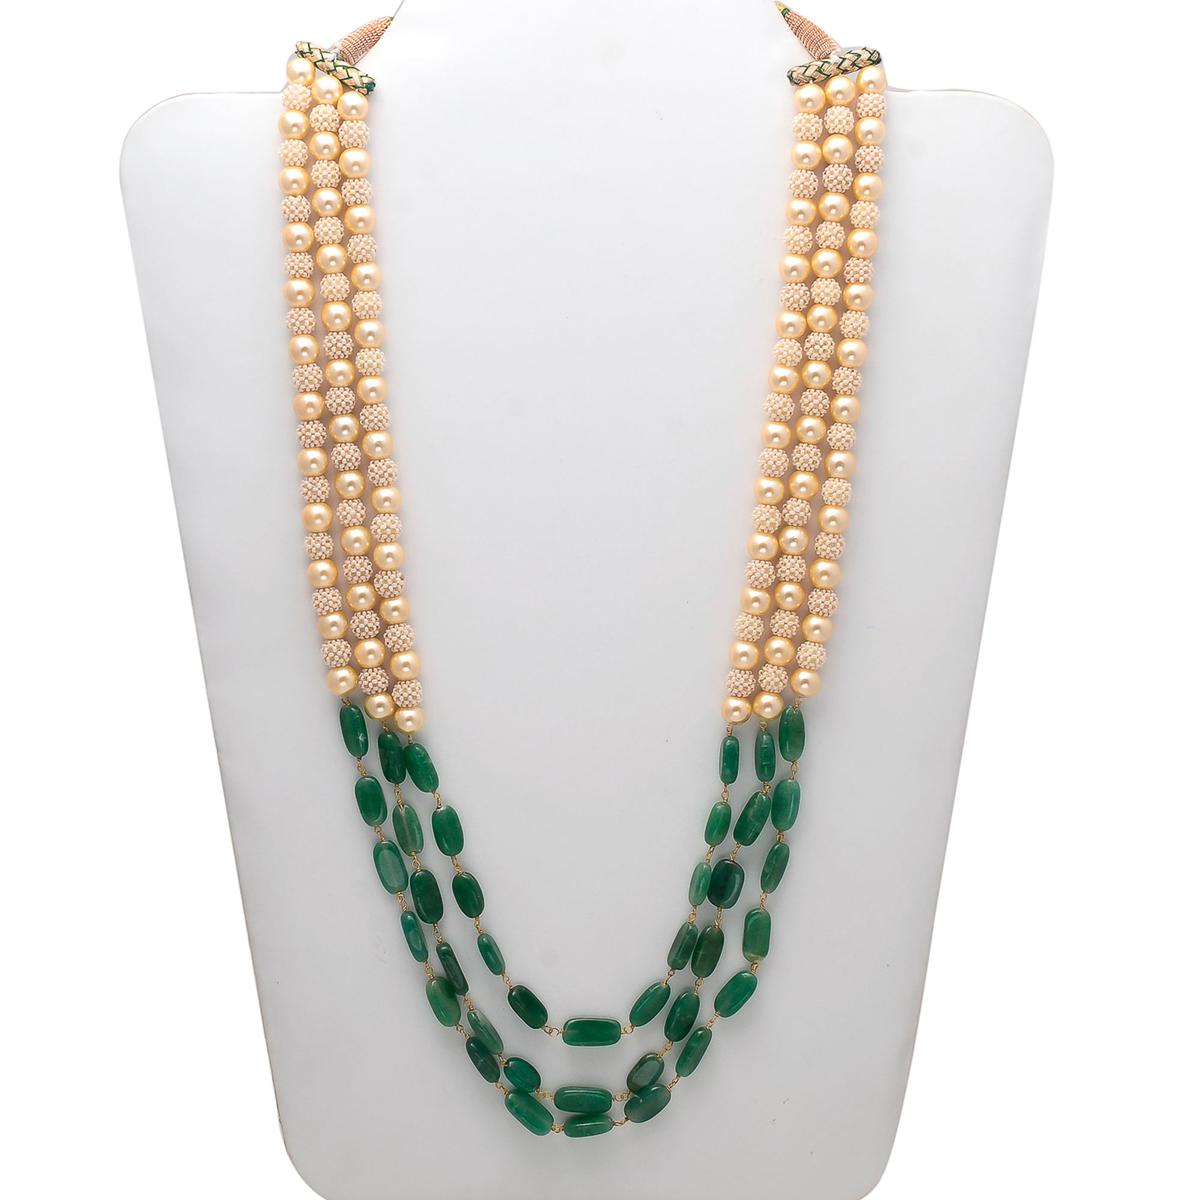 Adorable Necklace With Pearl & Green Colored Stones